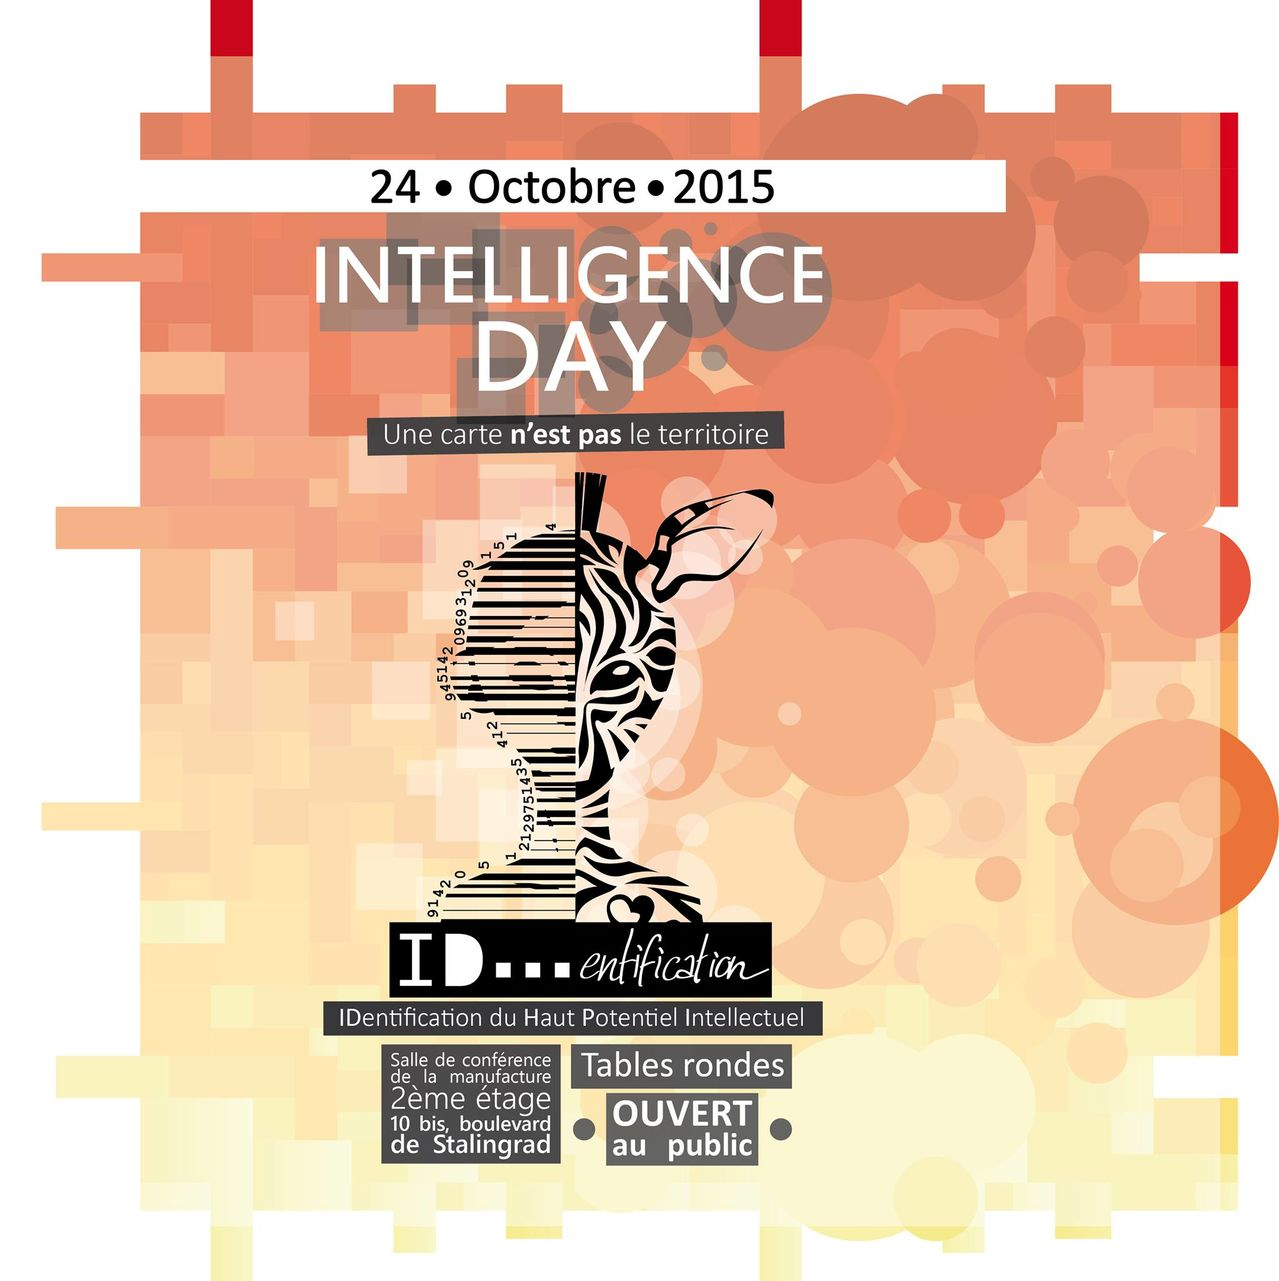 Nantes : Intelligence Day 2015 (24 octobre) 12045697_10205722311070216_8264190847316140549_o